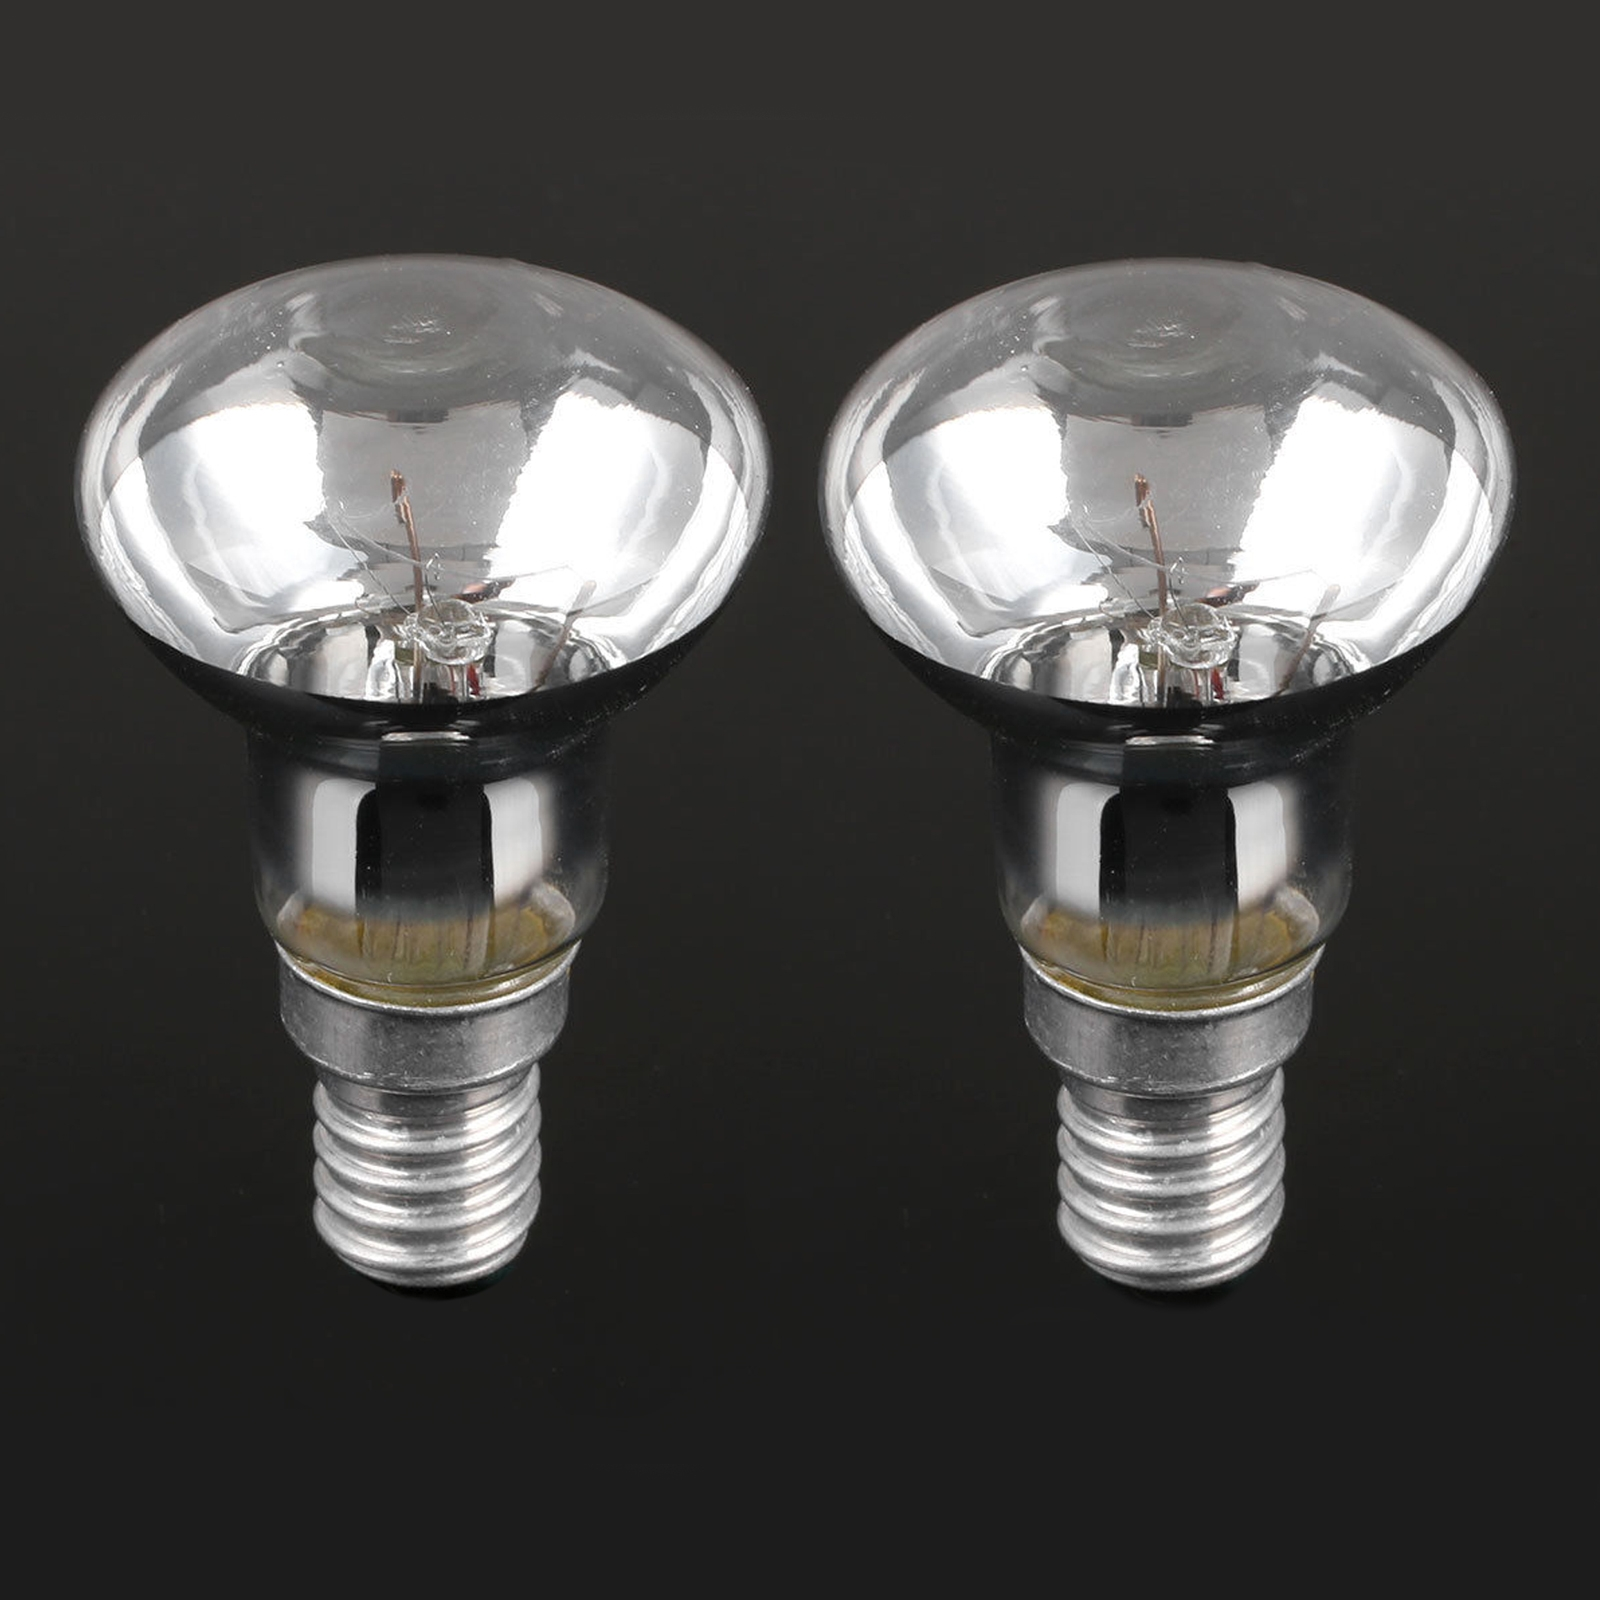 15w Lava Brand Lava Lamp Replacement Bulbs